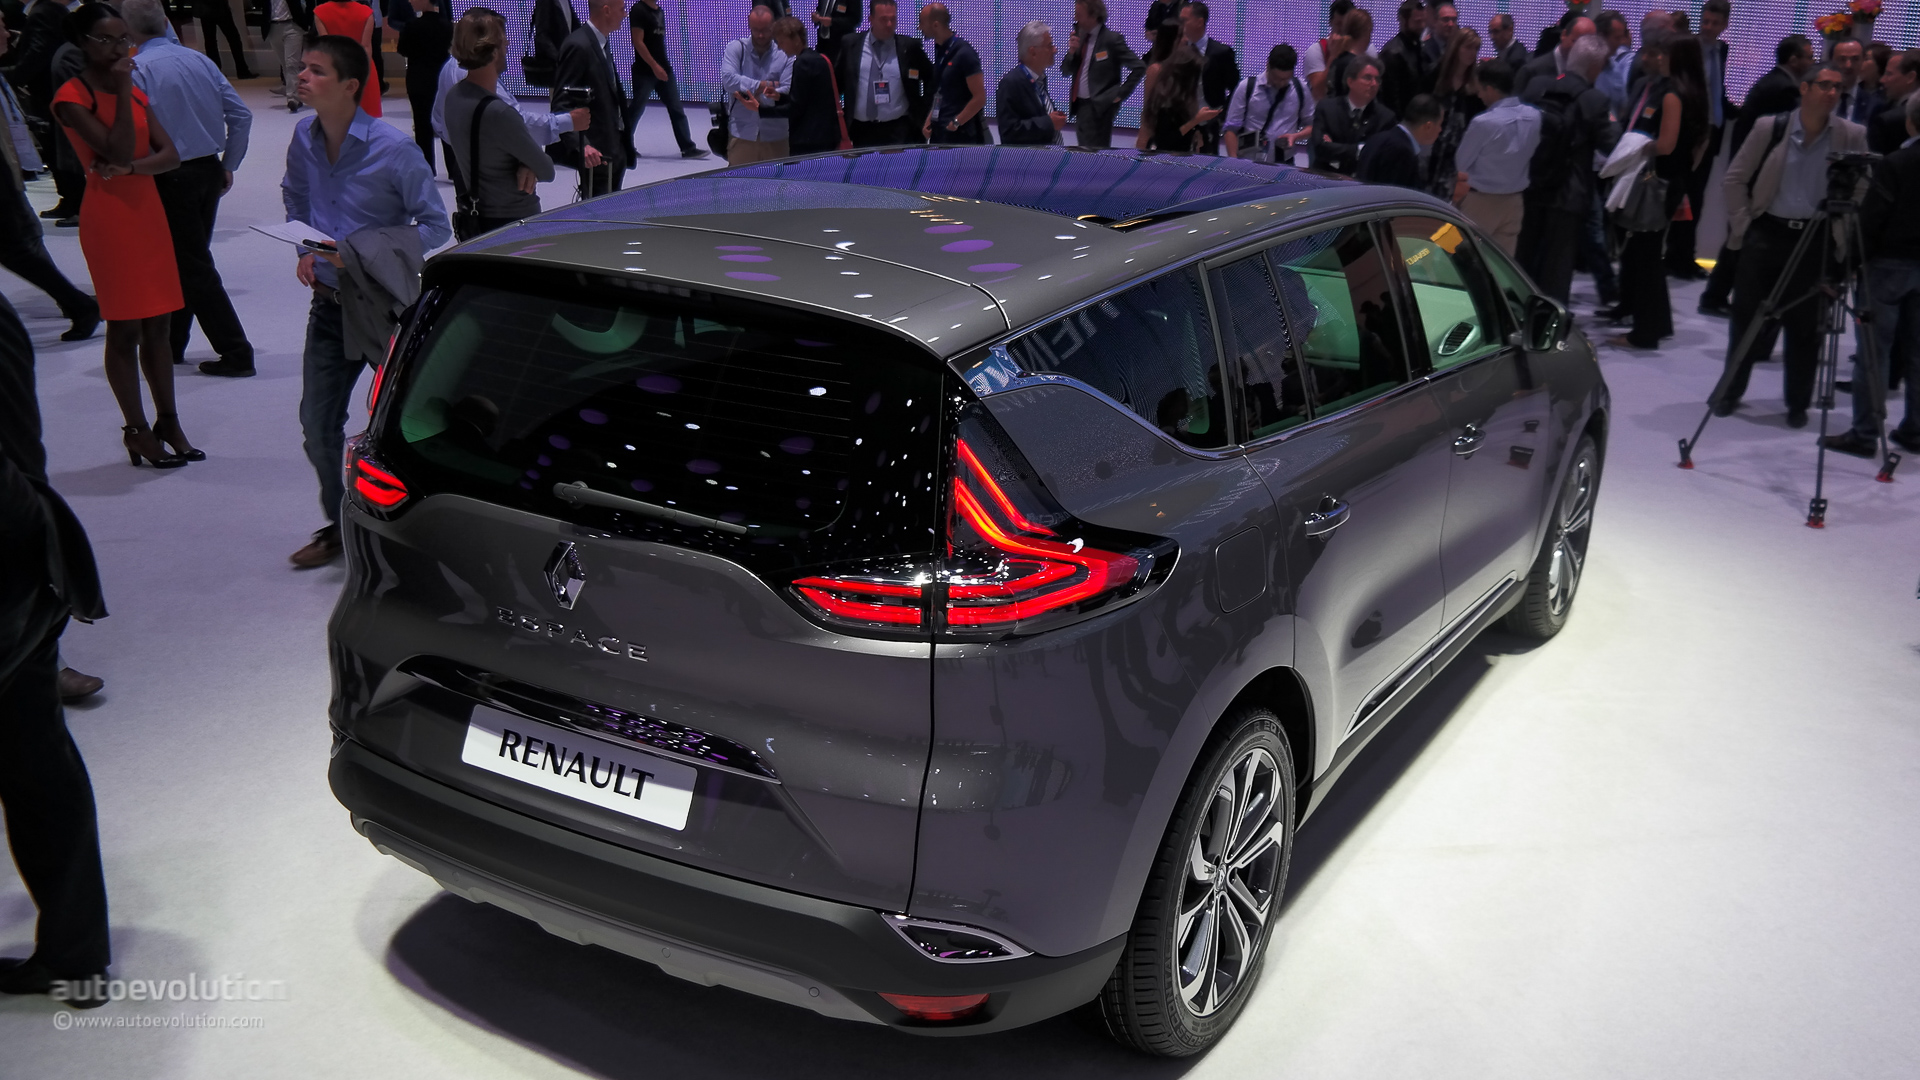 2015 renault espace has a clio rs 200 horsepower engine